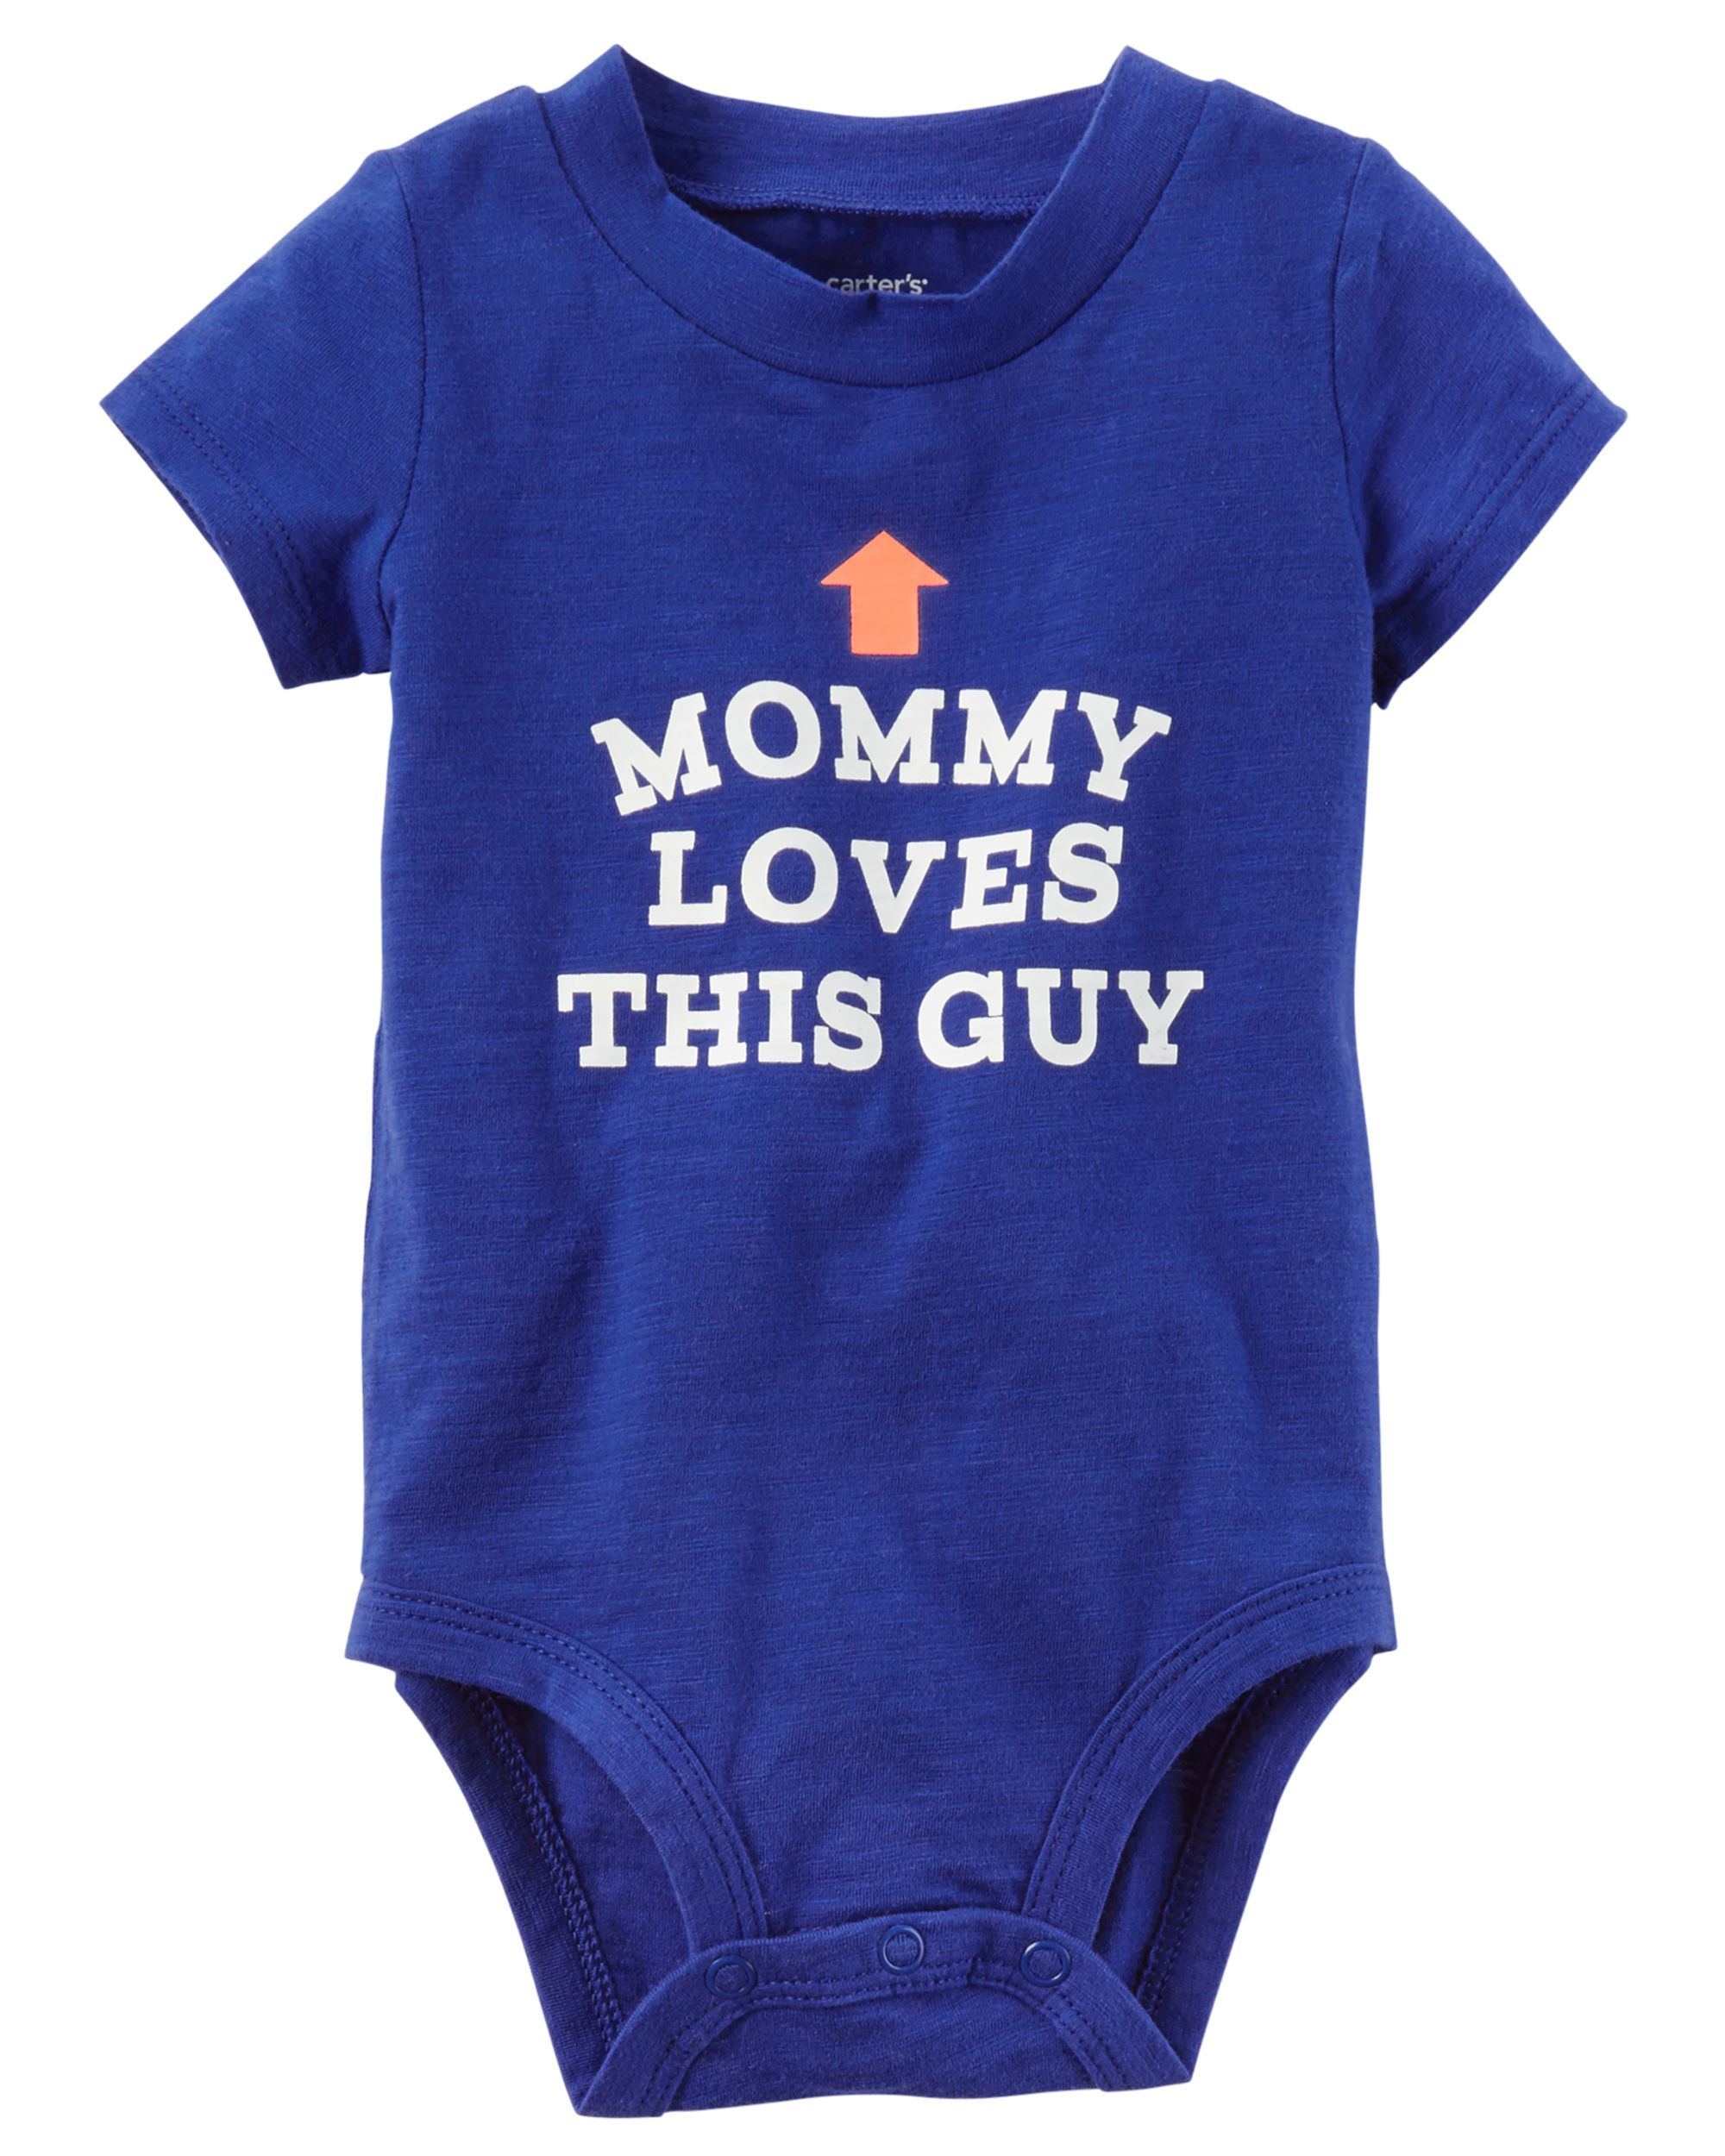 Mommy Loves This Guy Collectible Bodysuit